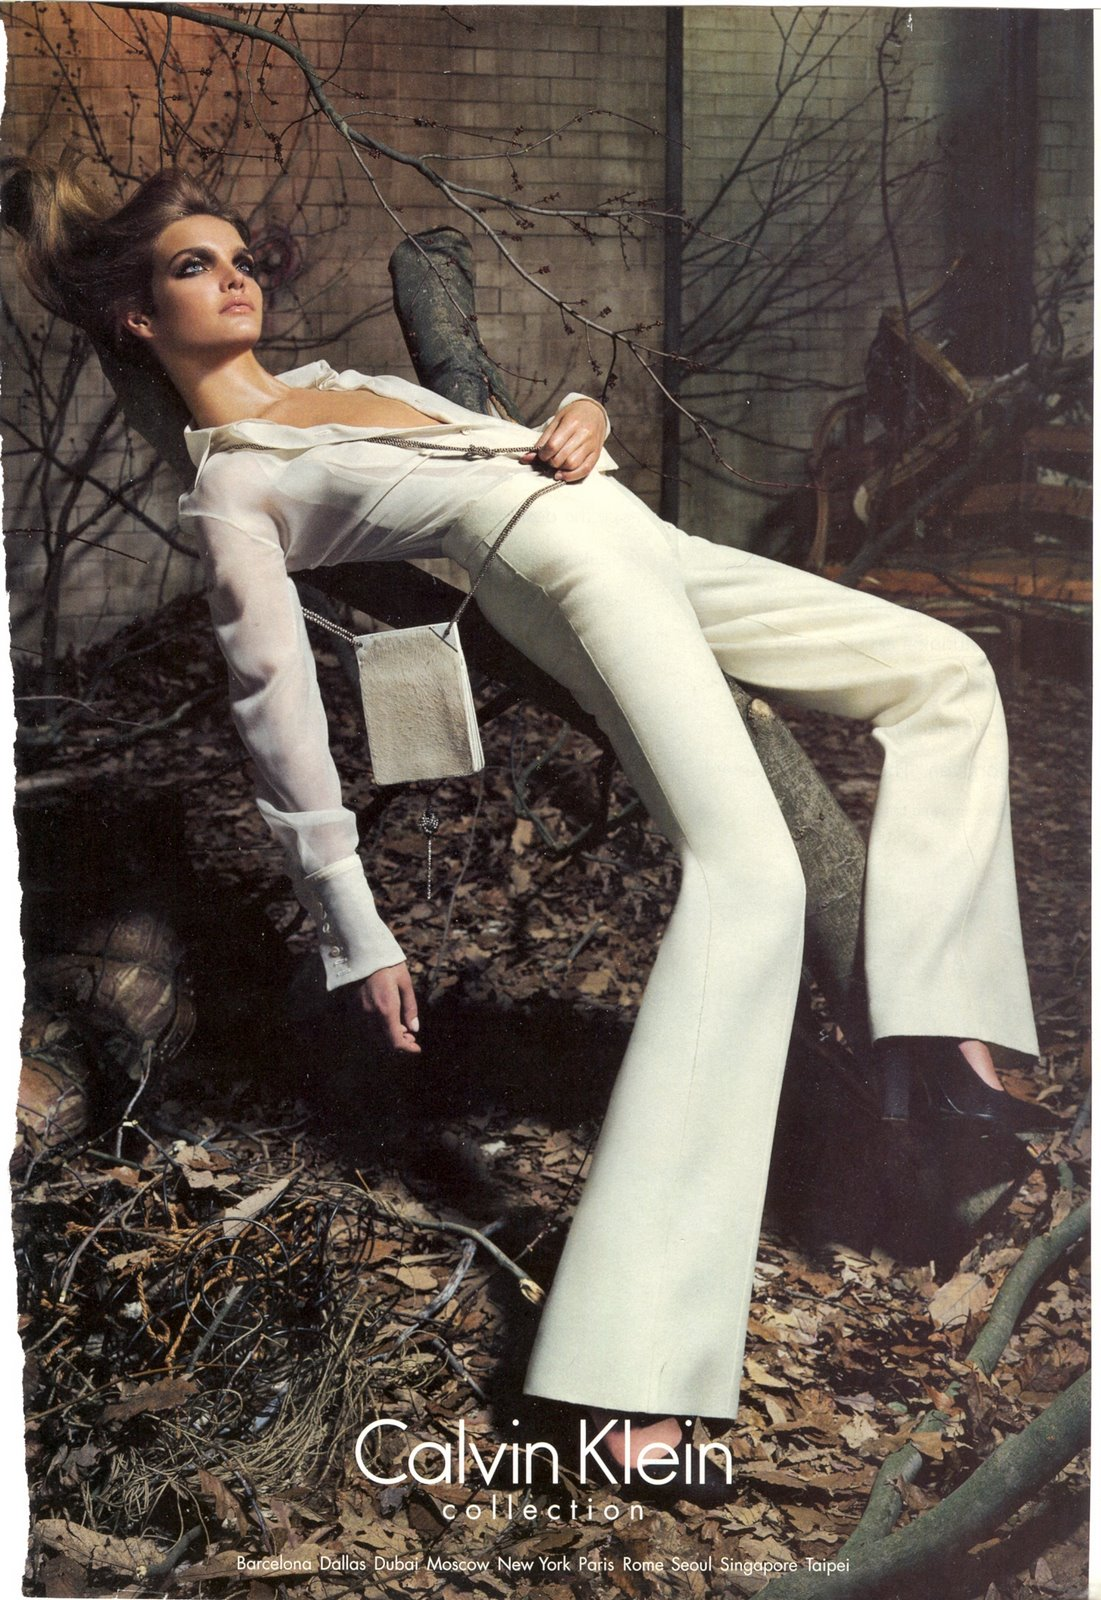 Manipulated Women And High Fashion Sociological Images